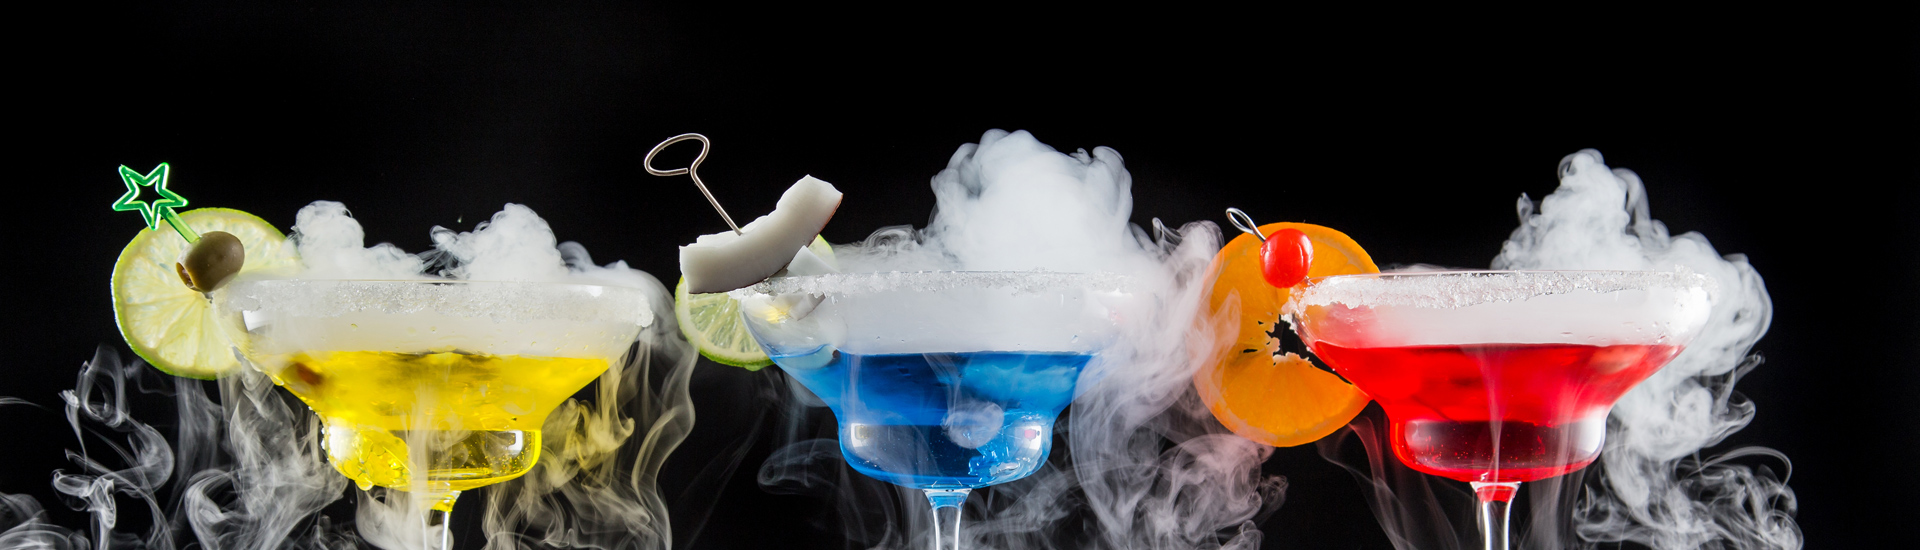 Cocktail With Dry Ice Vapor